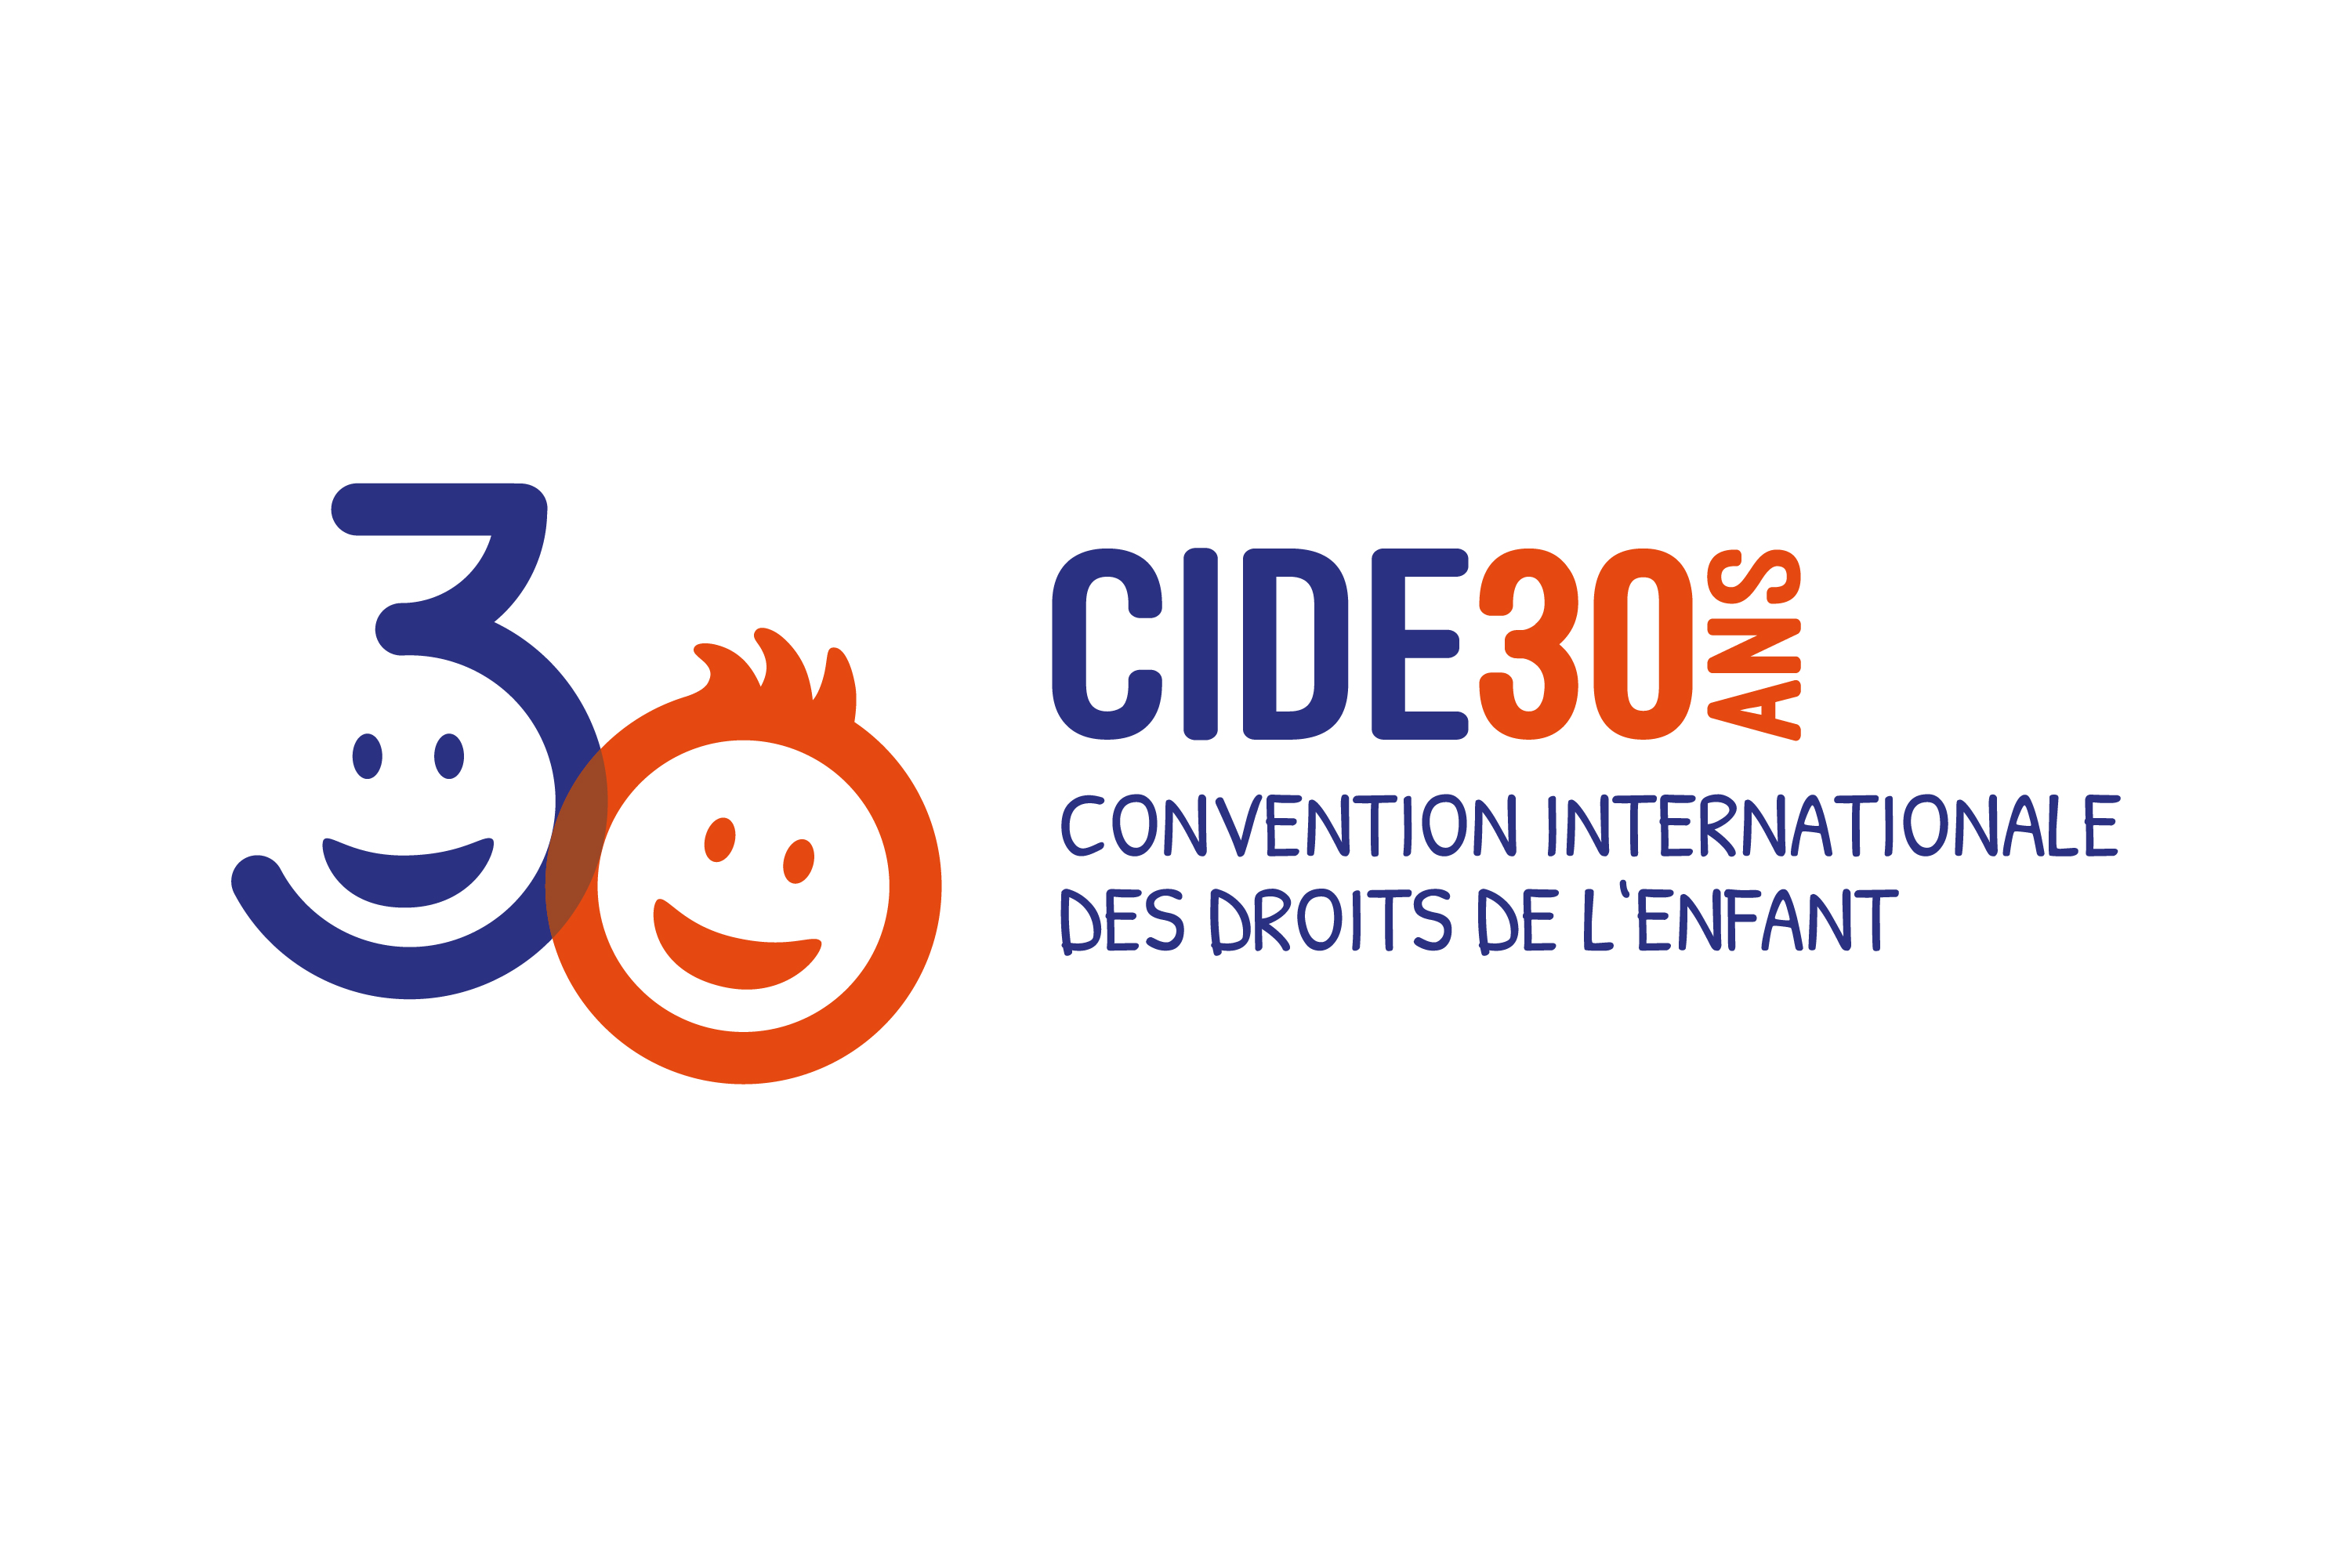 30th Anniversary of the International Convention on the Rights of the Child